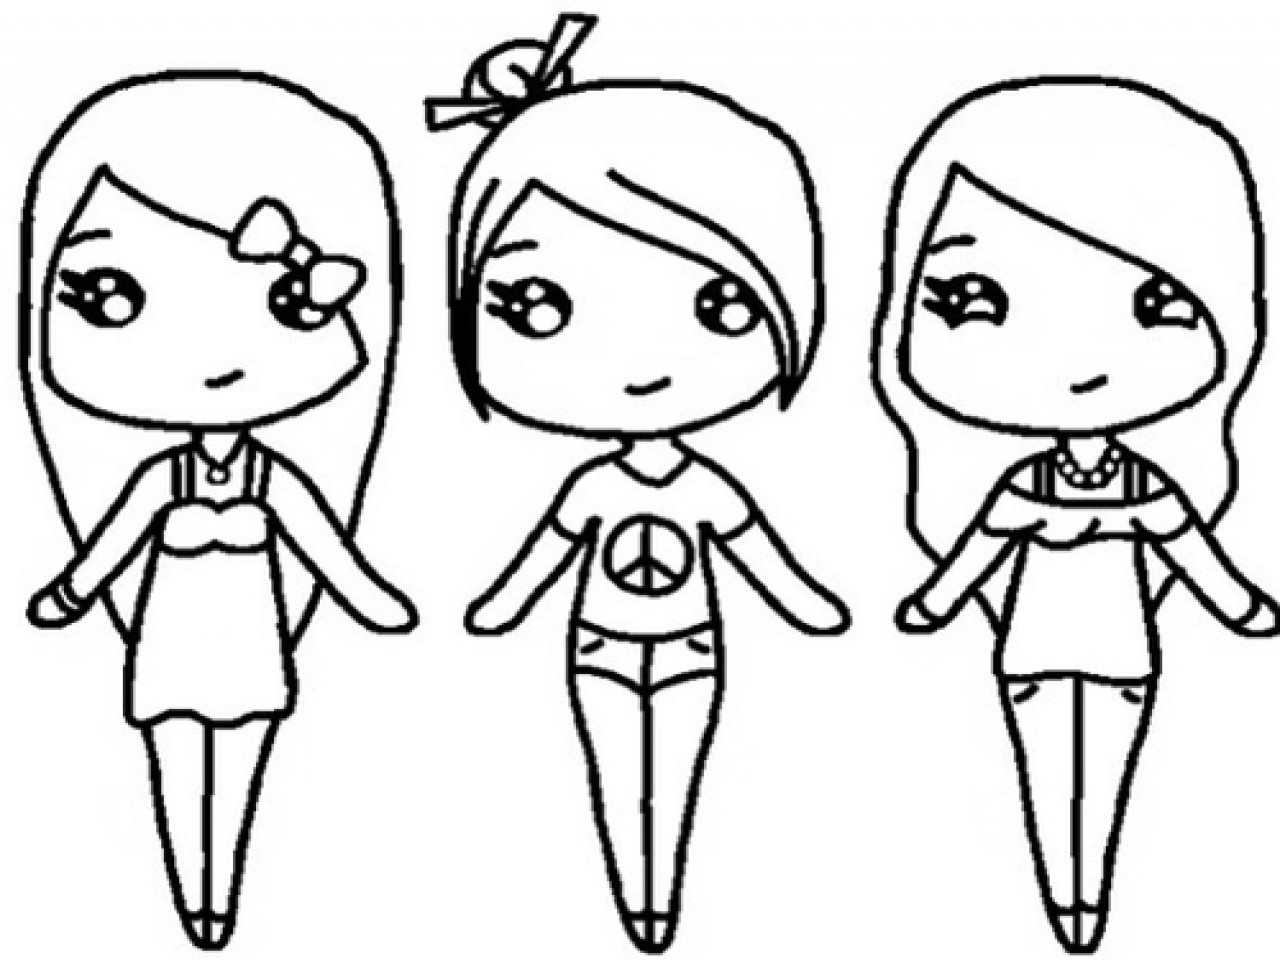 Best ideas about Best Friend Coloring Pages For Girls . Save or Pin Bff Coloring Pages For Girls Best Friend Chibi Stencils Now.